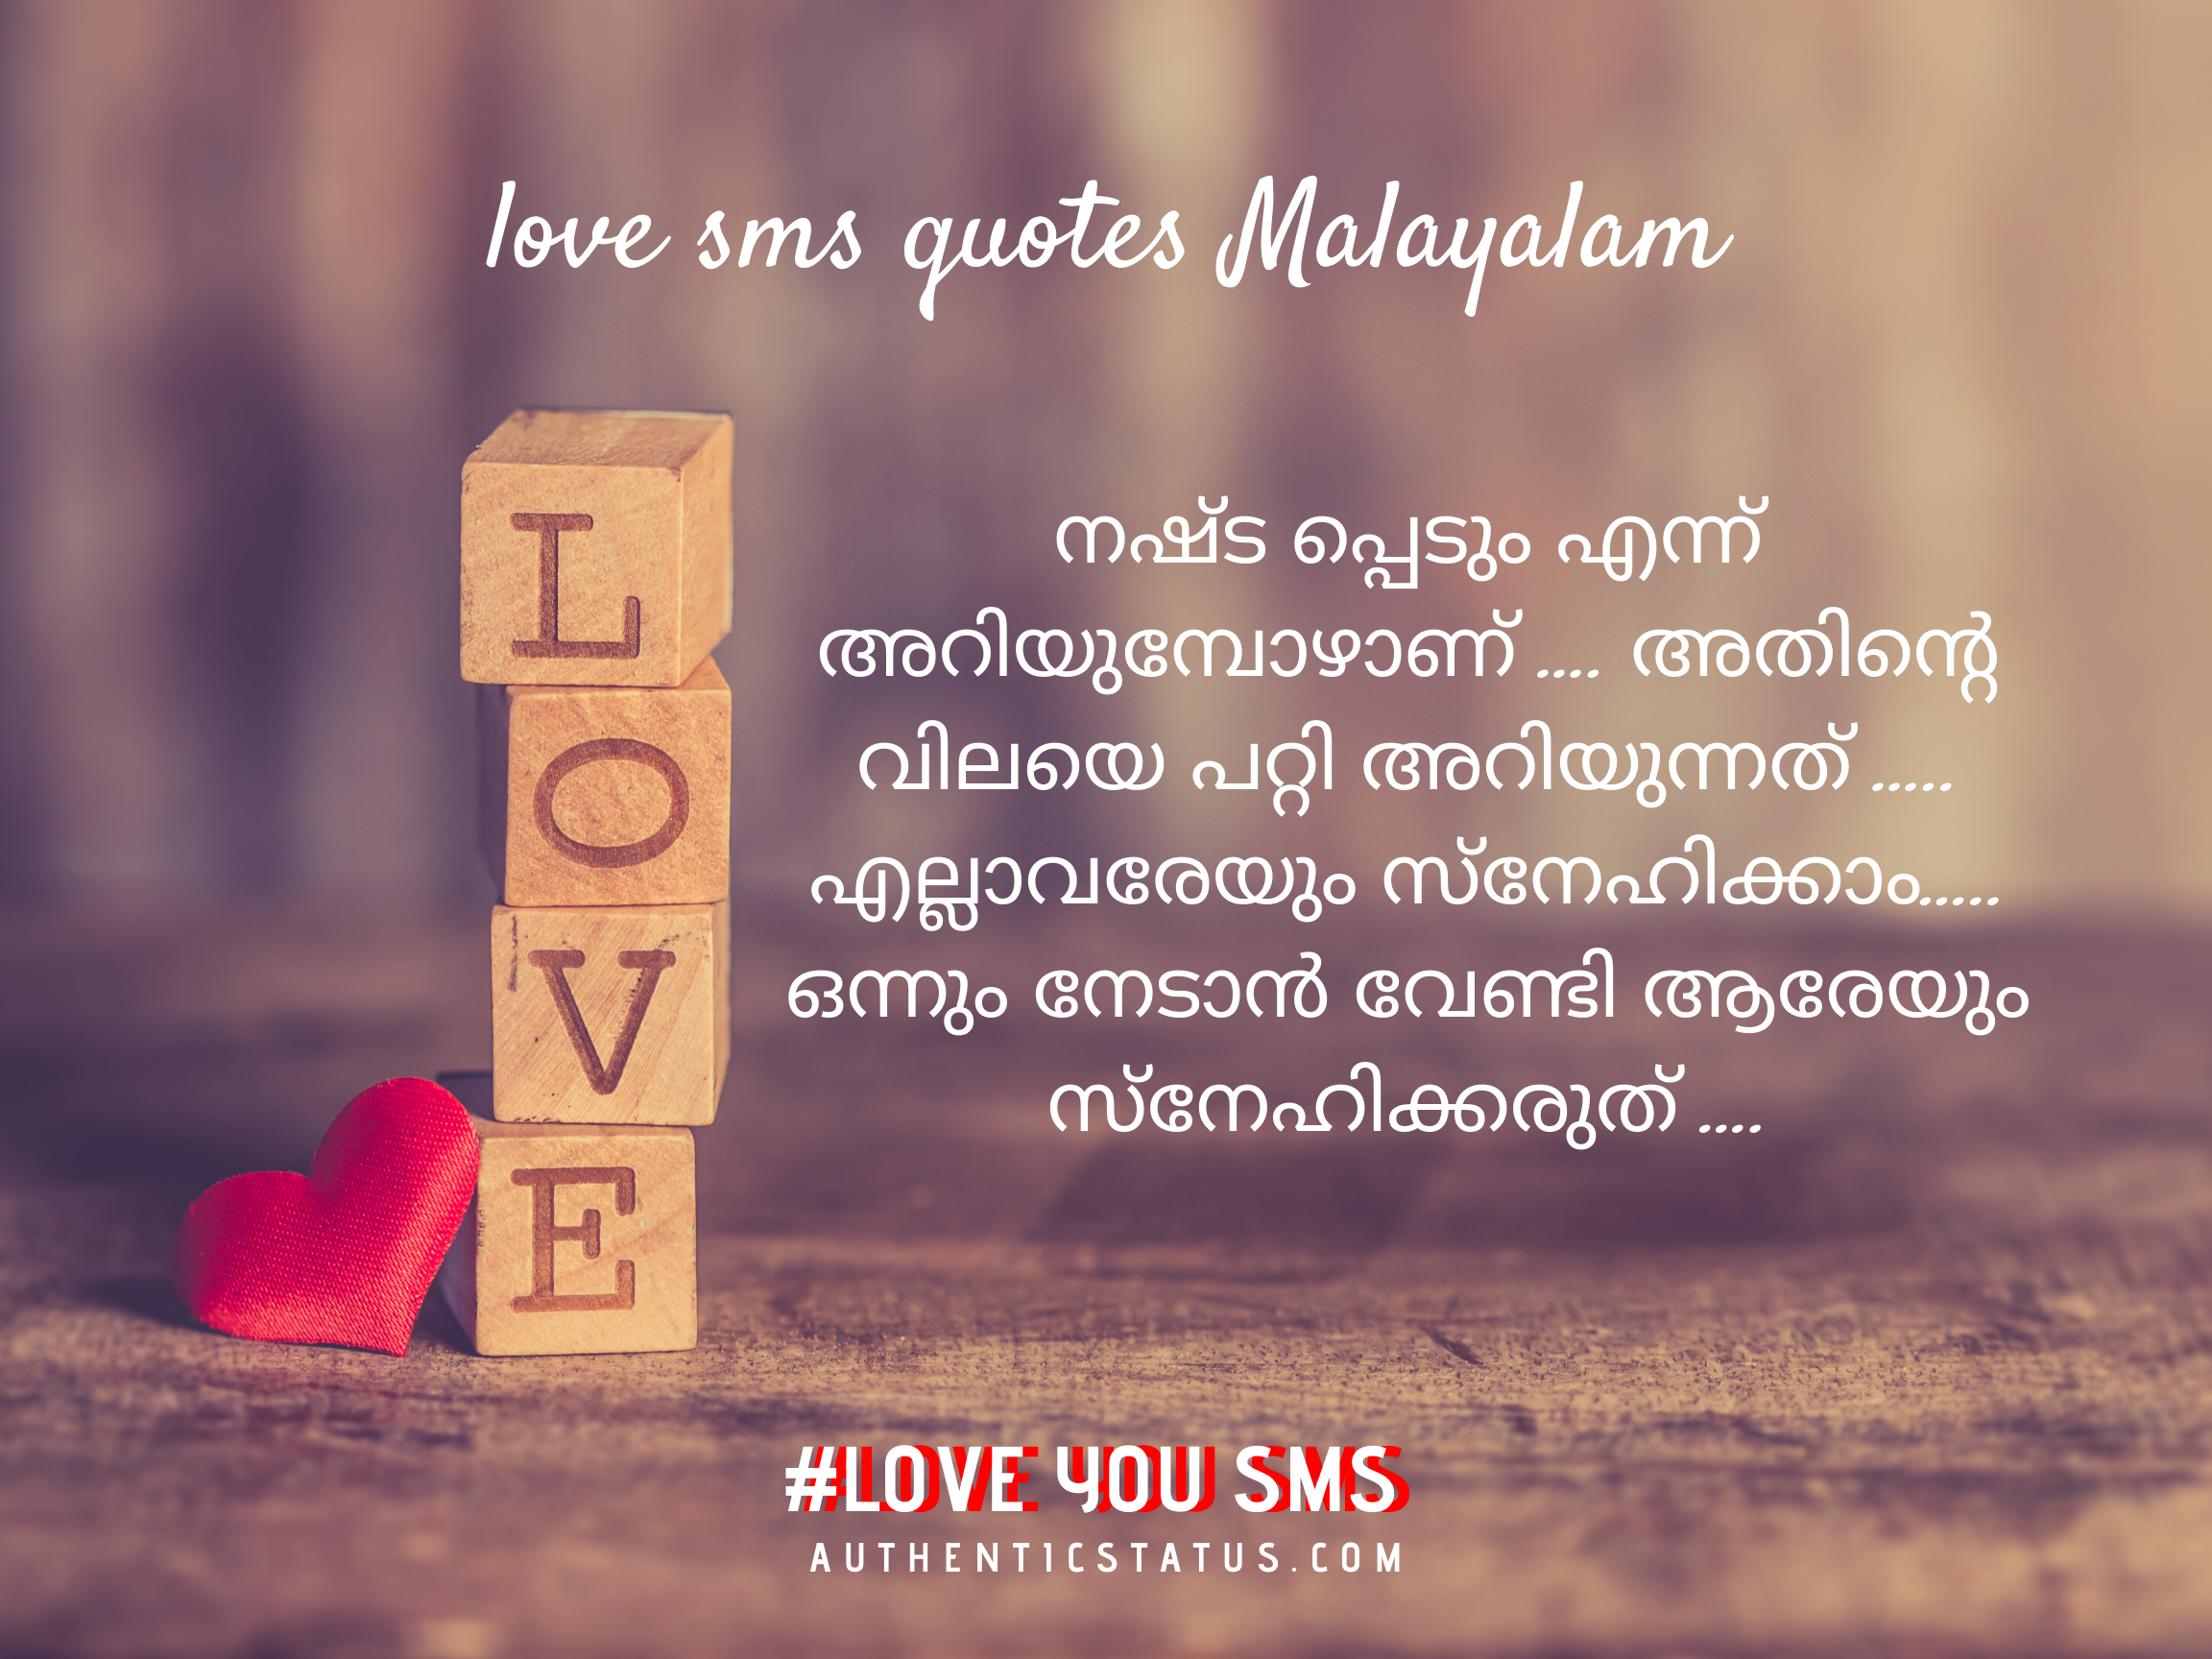 love sms quotes, Malayalam sms, love sms picture | by Authentic Status |  Medium